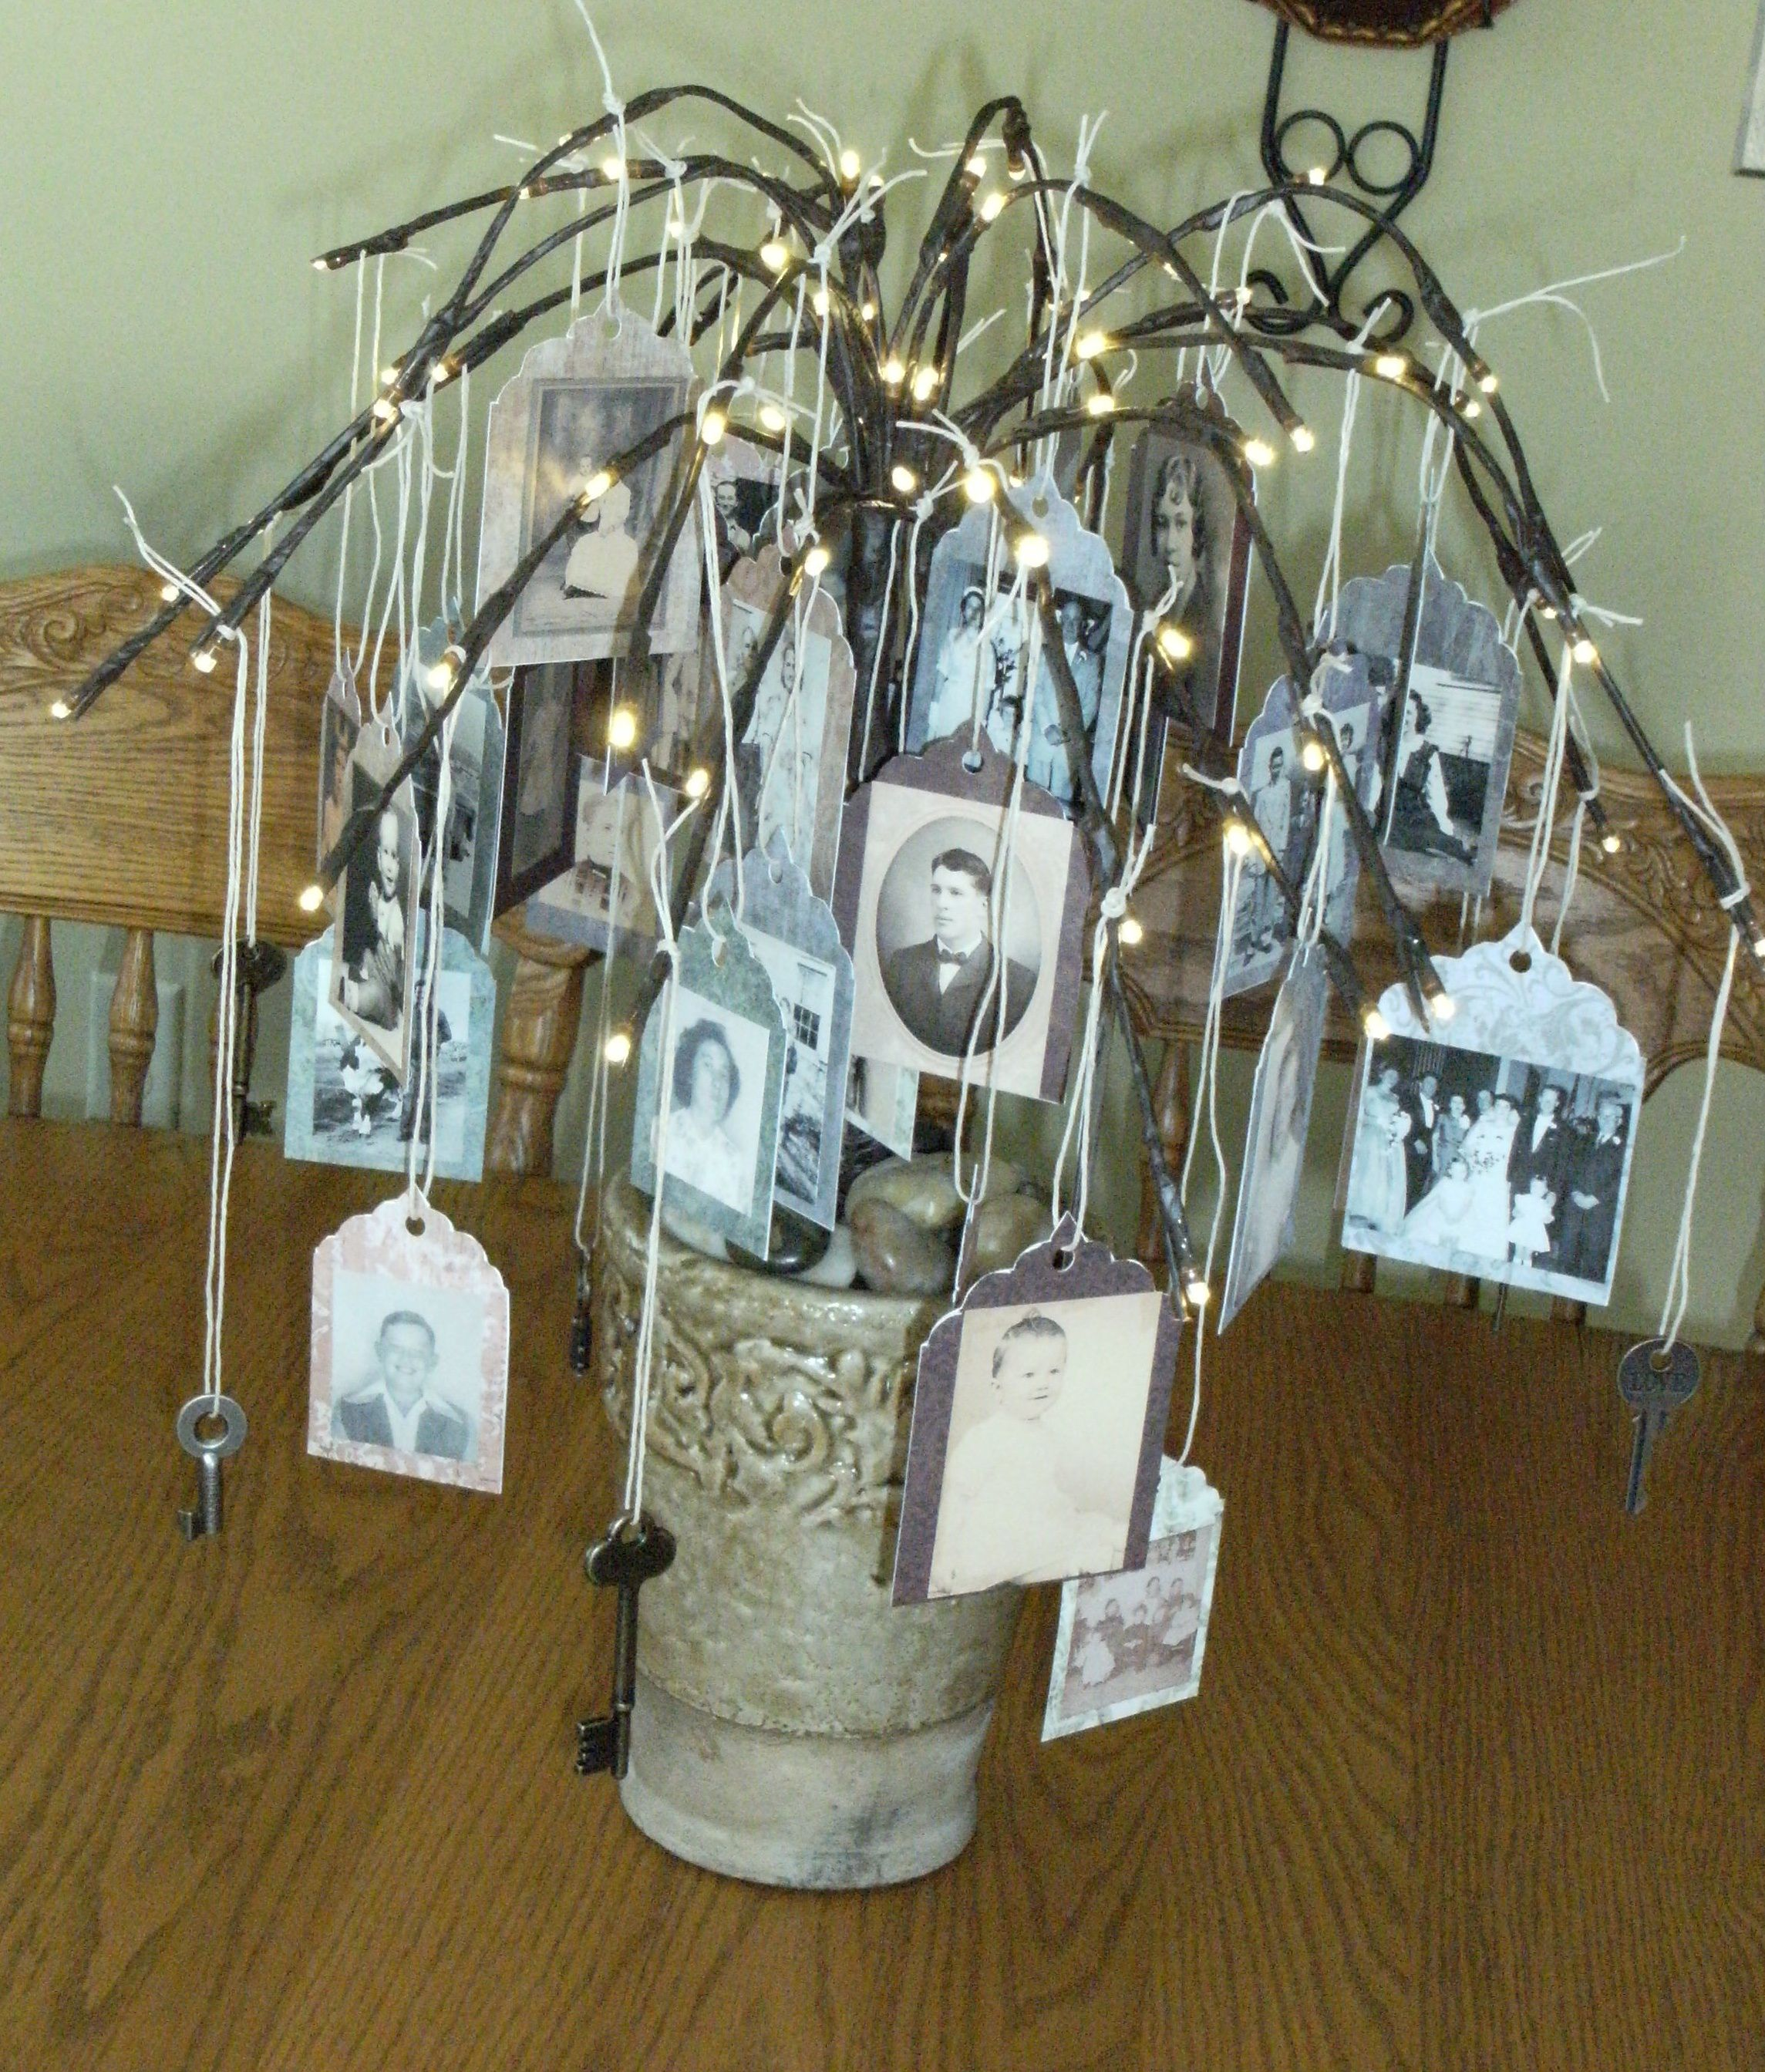 Family tree centerpiece created by using lighted twigs